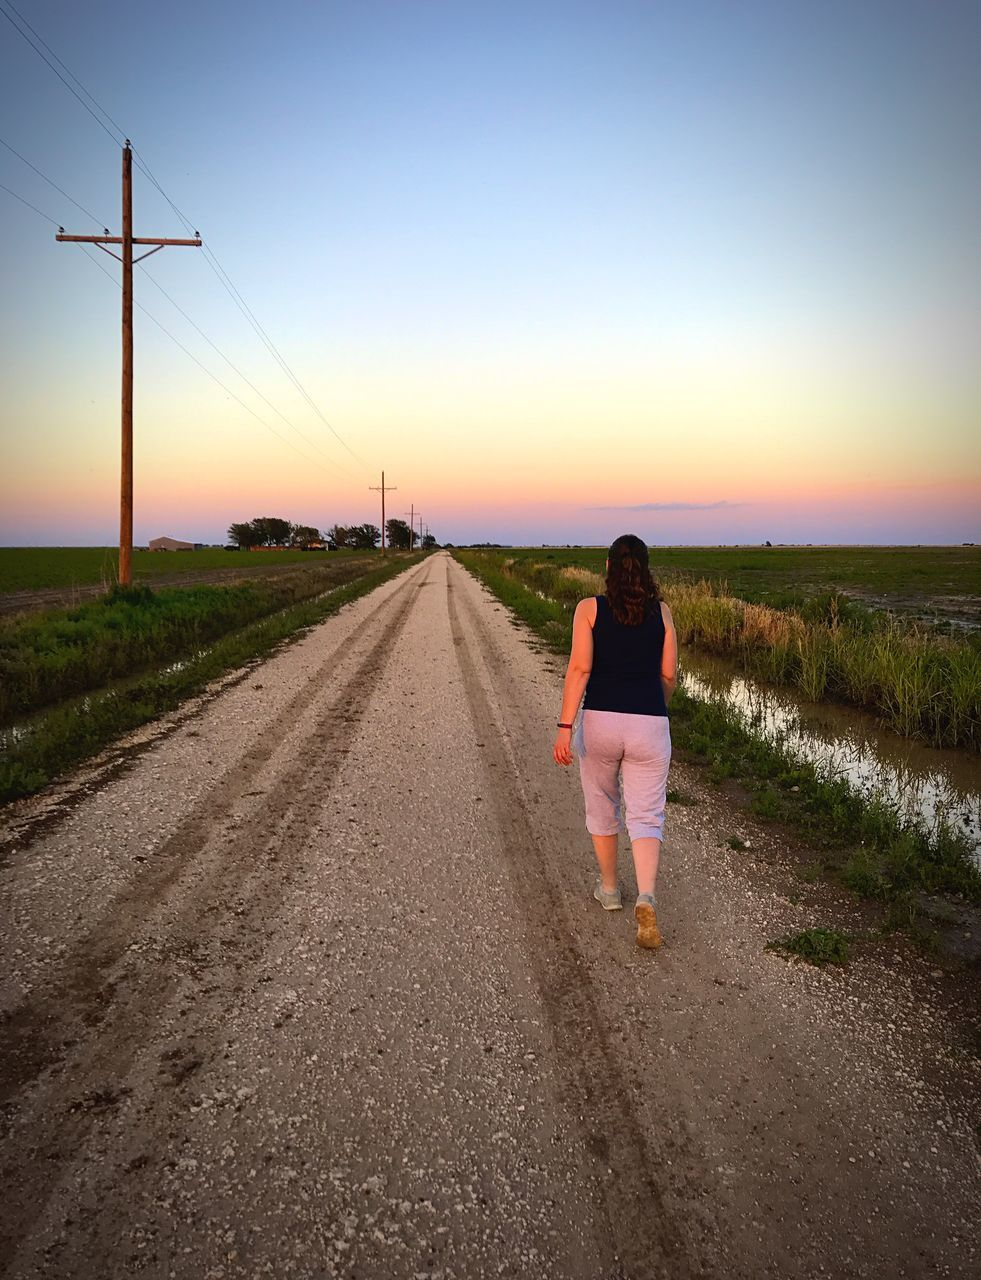 the way forward, rear view, full length, sunset, one person, real people, walking, lifestyles, sky, clear sky, transportation, nature, outdoors, leisure activity, road, scenics, grass, beauty in nature, day, young adult, people